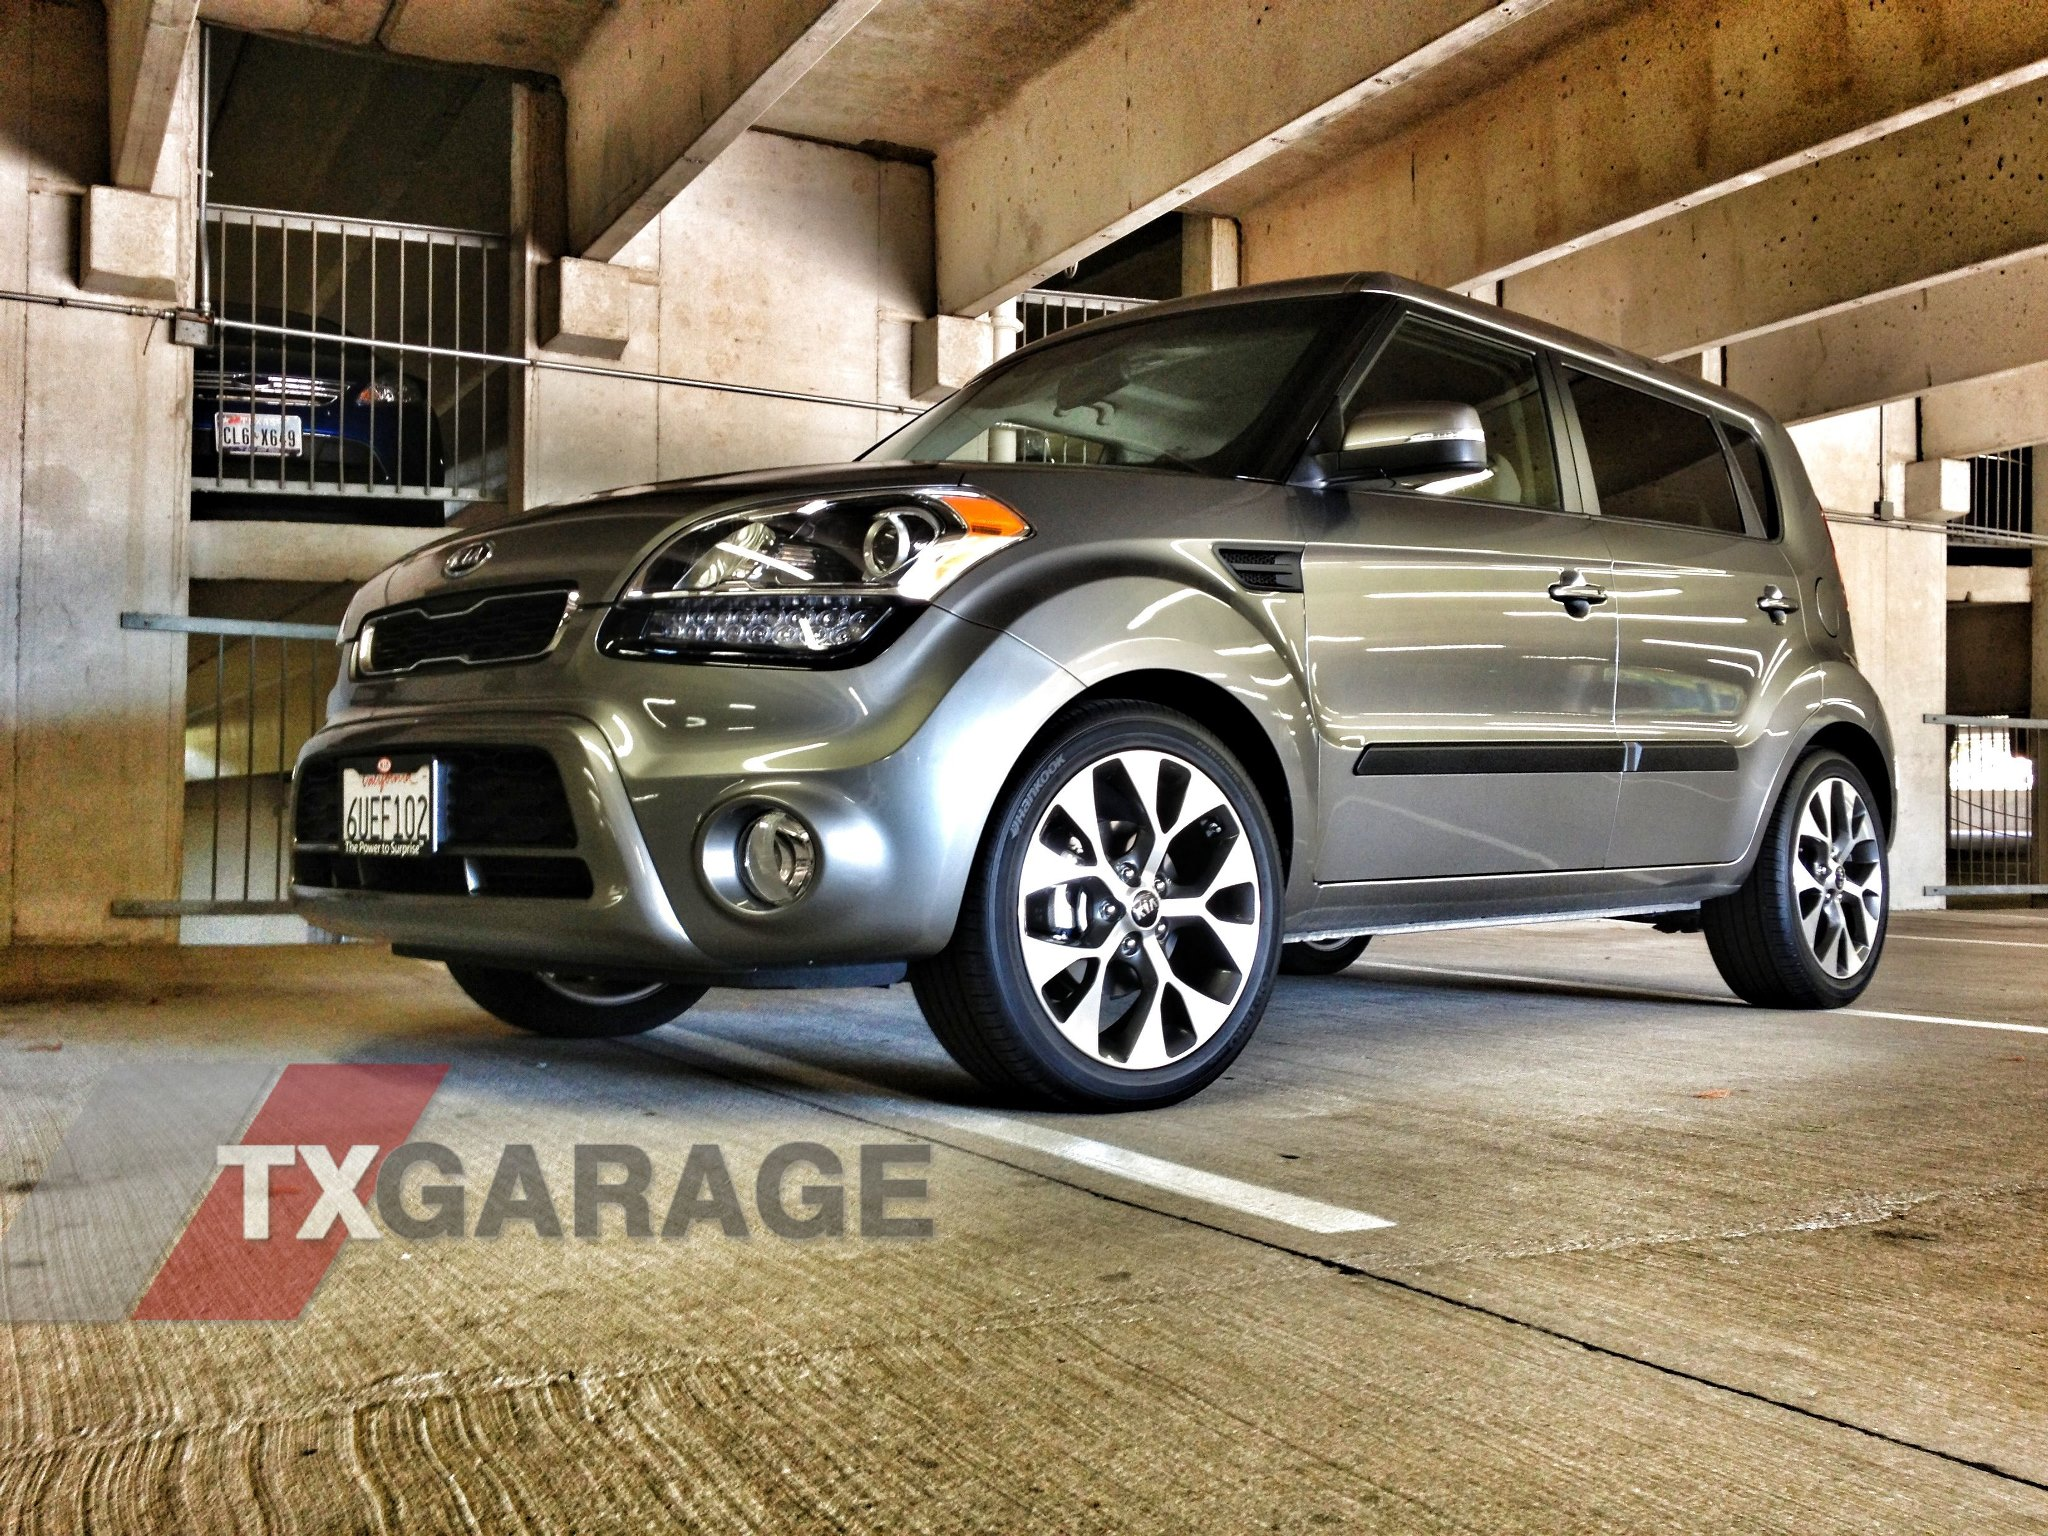 2012 Kia Soul in the Garage